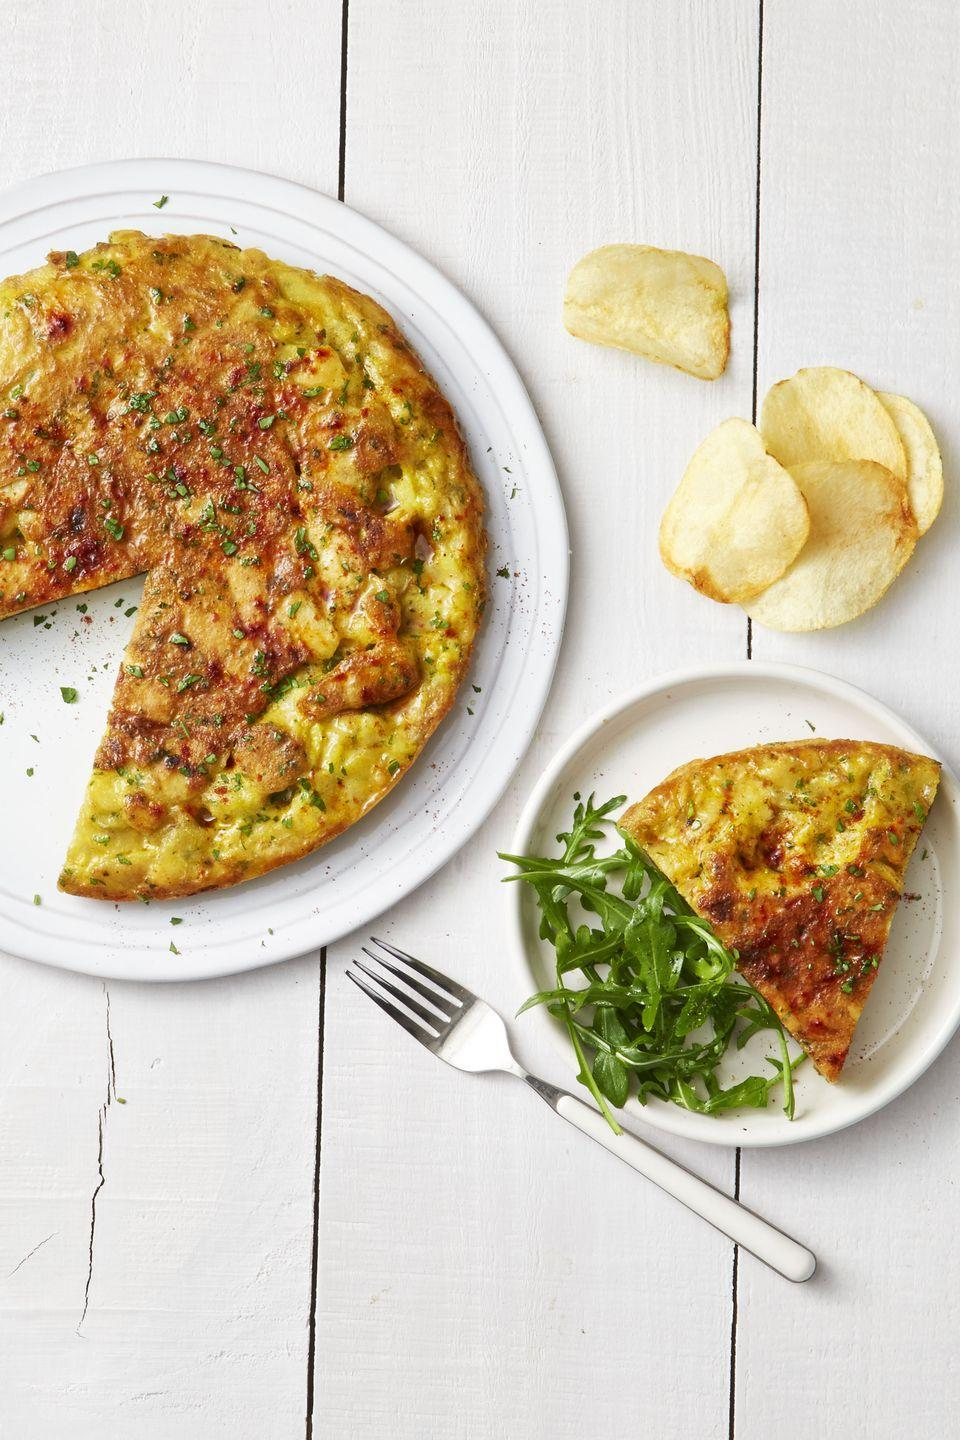 """<p>Proof that salty snacks have a place at your weekend brunch buffet.</p><p><a href=""""https://www.goodhousekeeping.com/food-recipes/a37302/potato-chip-omelet-recipe/"""" rel=""""nofollow noopener"""" target=""""_blank"""" data-ylk=""""slk:Get the recipe for Potato Chip Omelet »"""" class=""""link rapid-noclick-resp""""><em>Get the recipe for Potato Chip Omelet »</em></a></p>"""